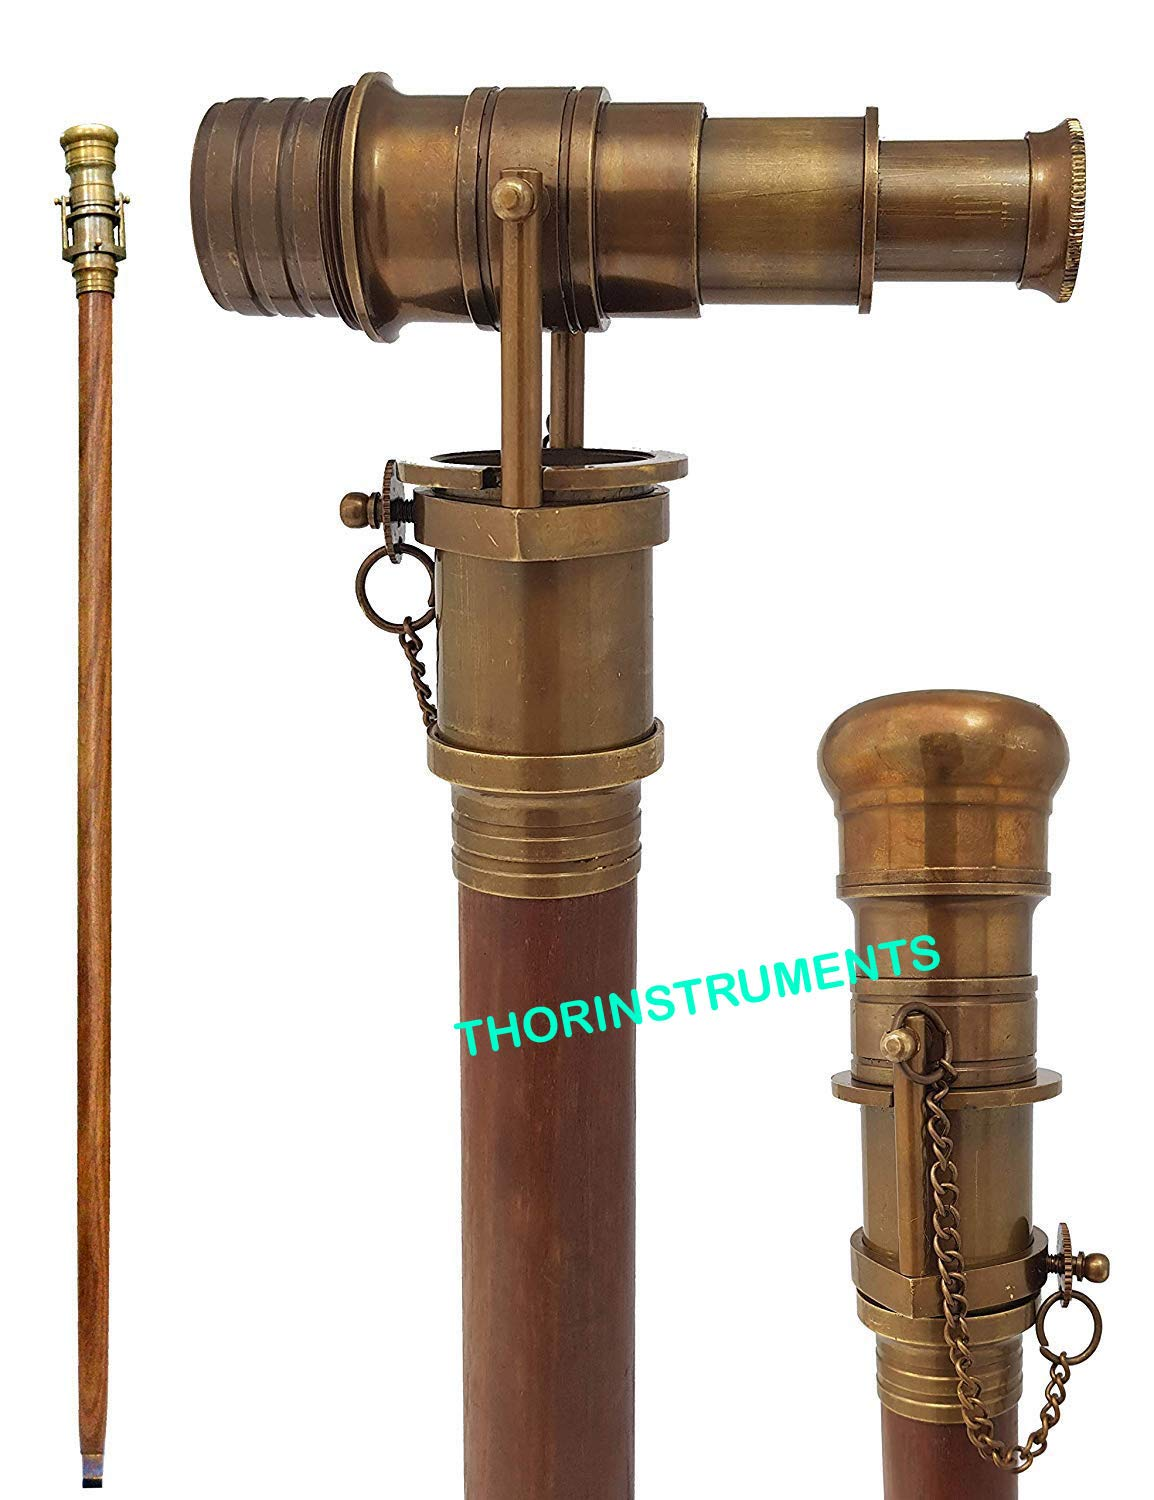 THORINSTRUMENTS (with device) Nautical Design Hollywood Walking Stick Collectors Telescope Wooden Walk Cane Gift by THORINSTRUMENTS (with device)